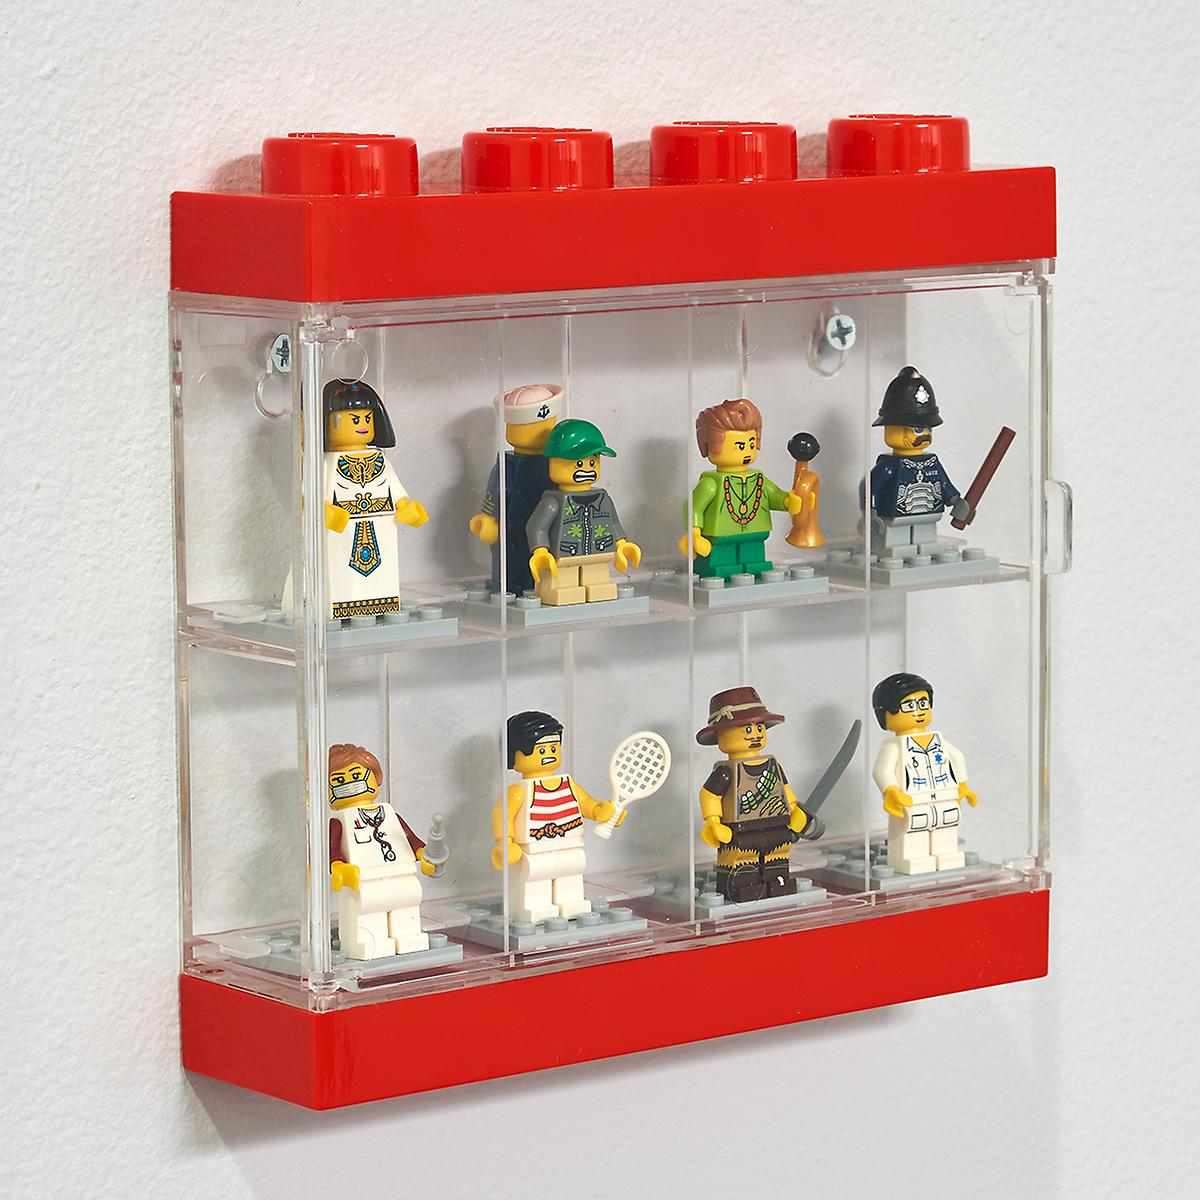 Extreem Lego Minifigure Display Case | The Container Store @RK15